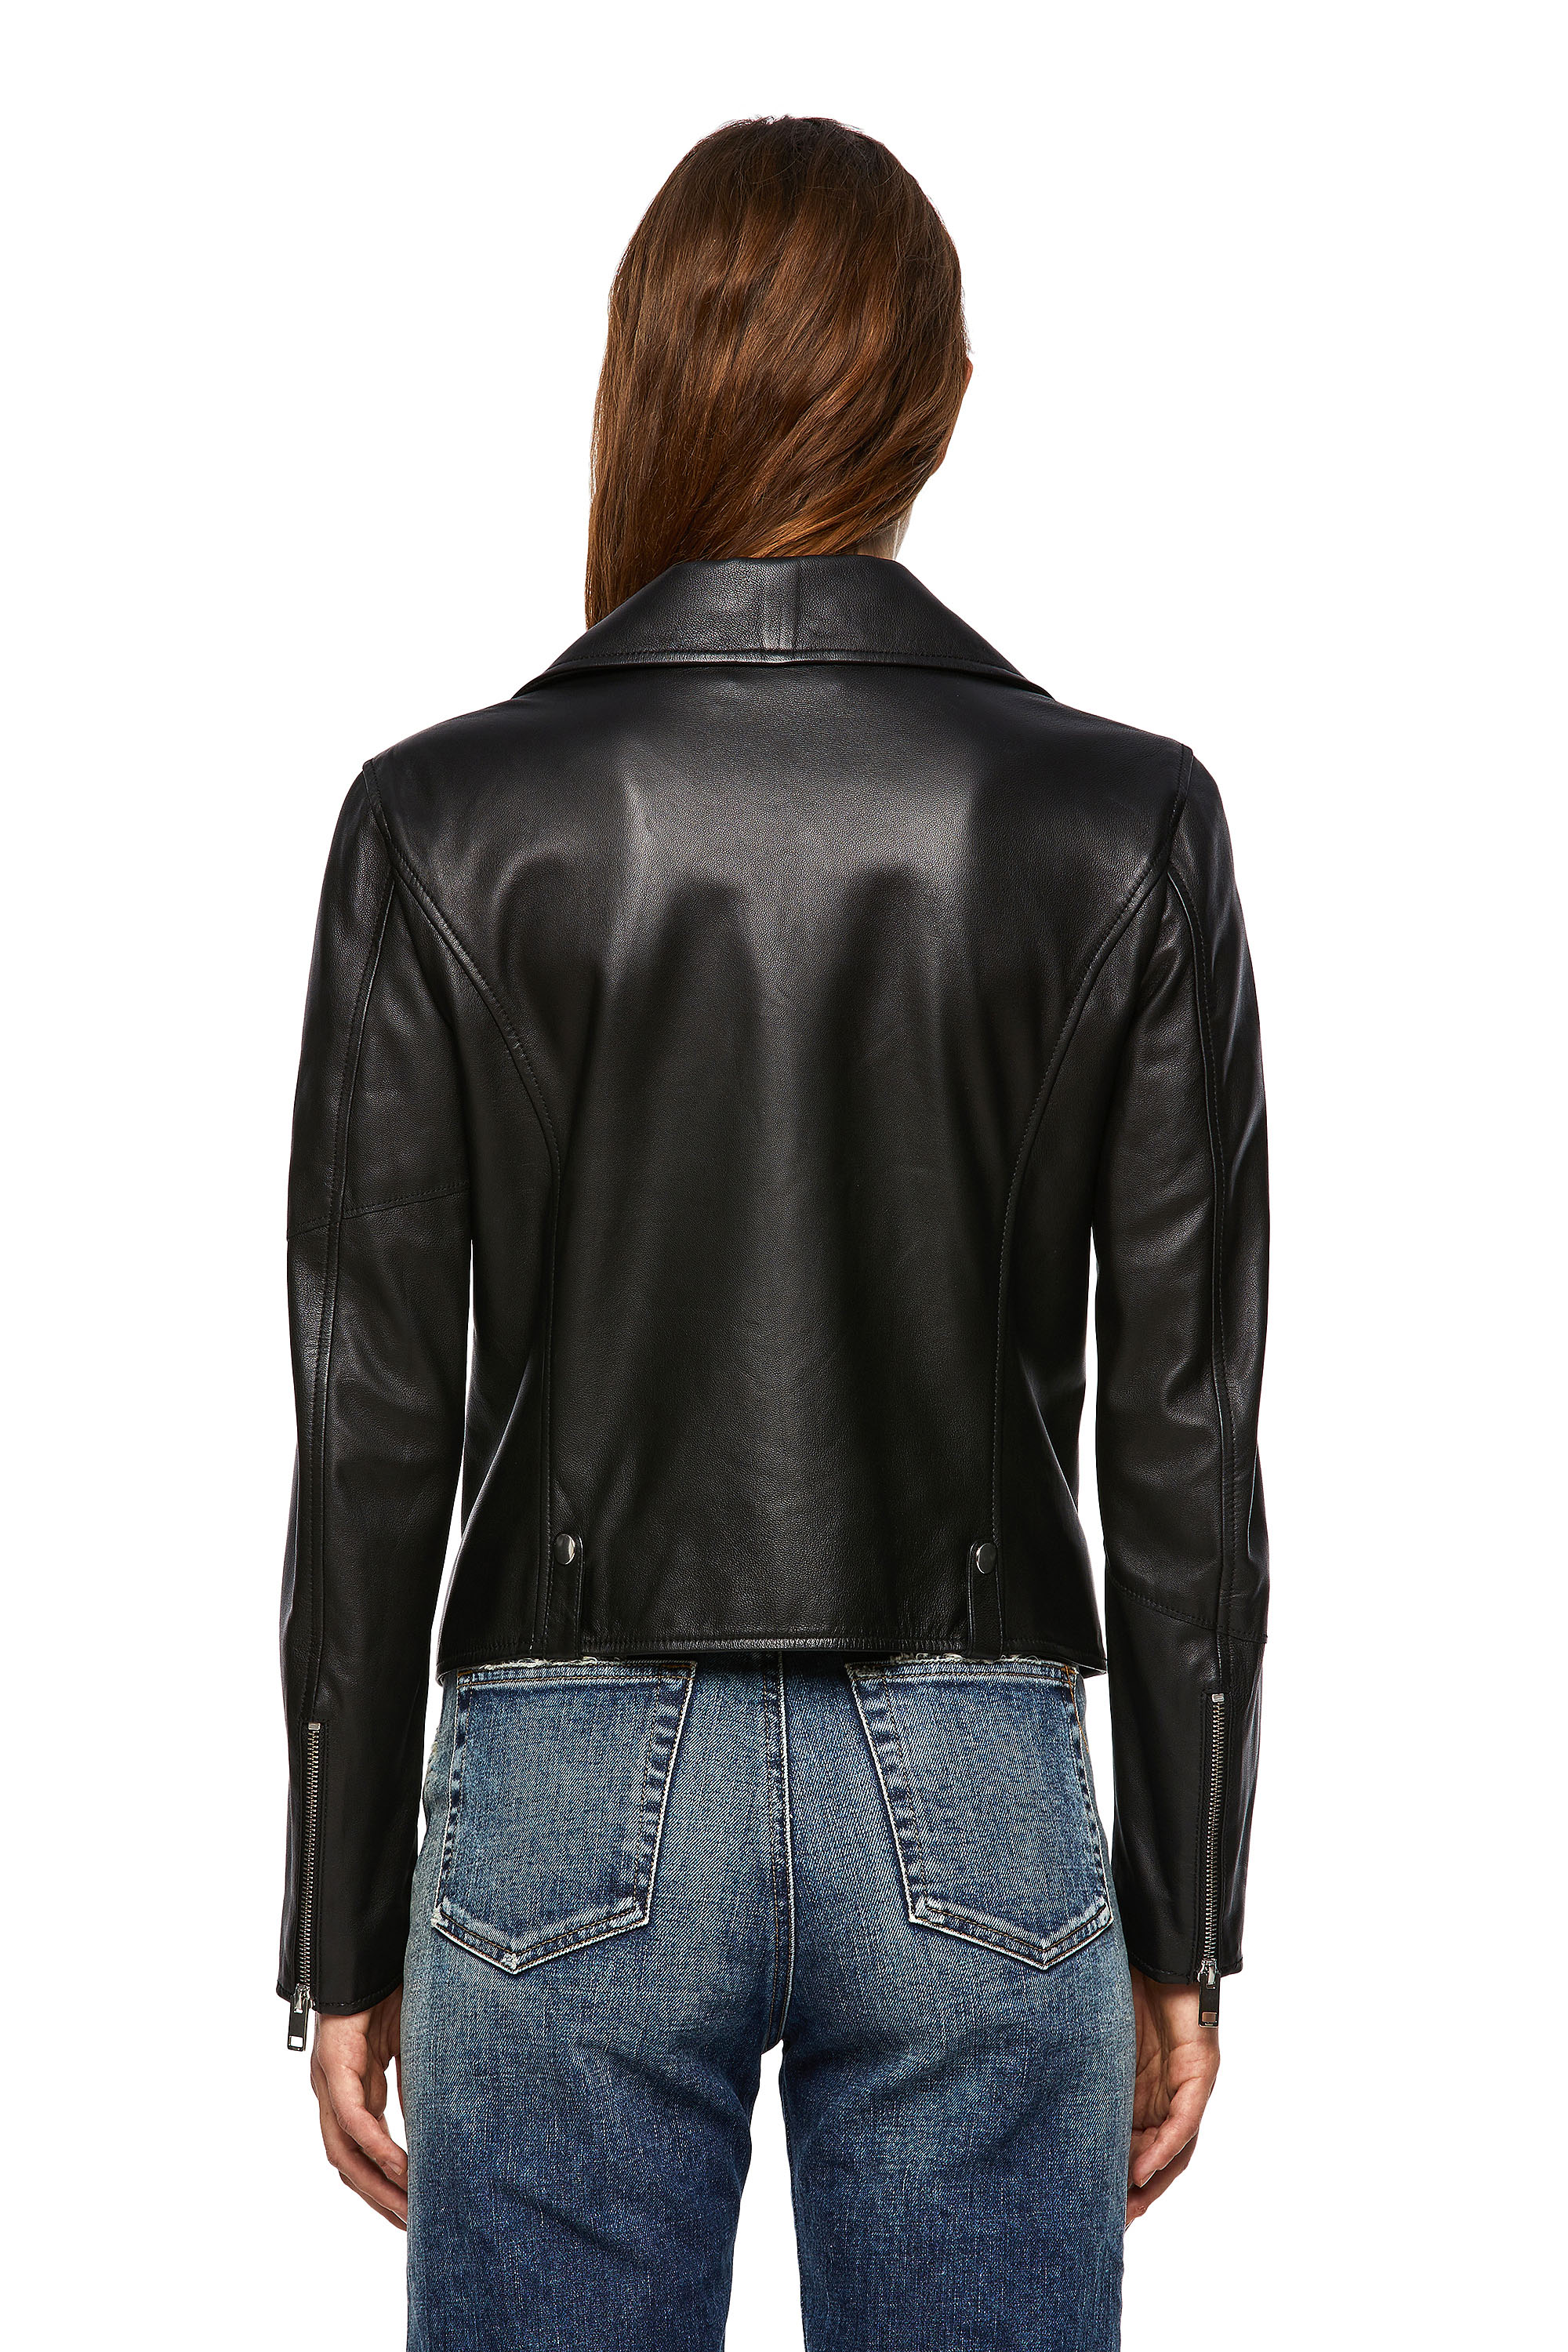 Diesel - L-LYFA,  - Leather jackets - Image 2